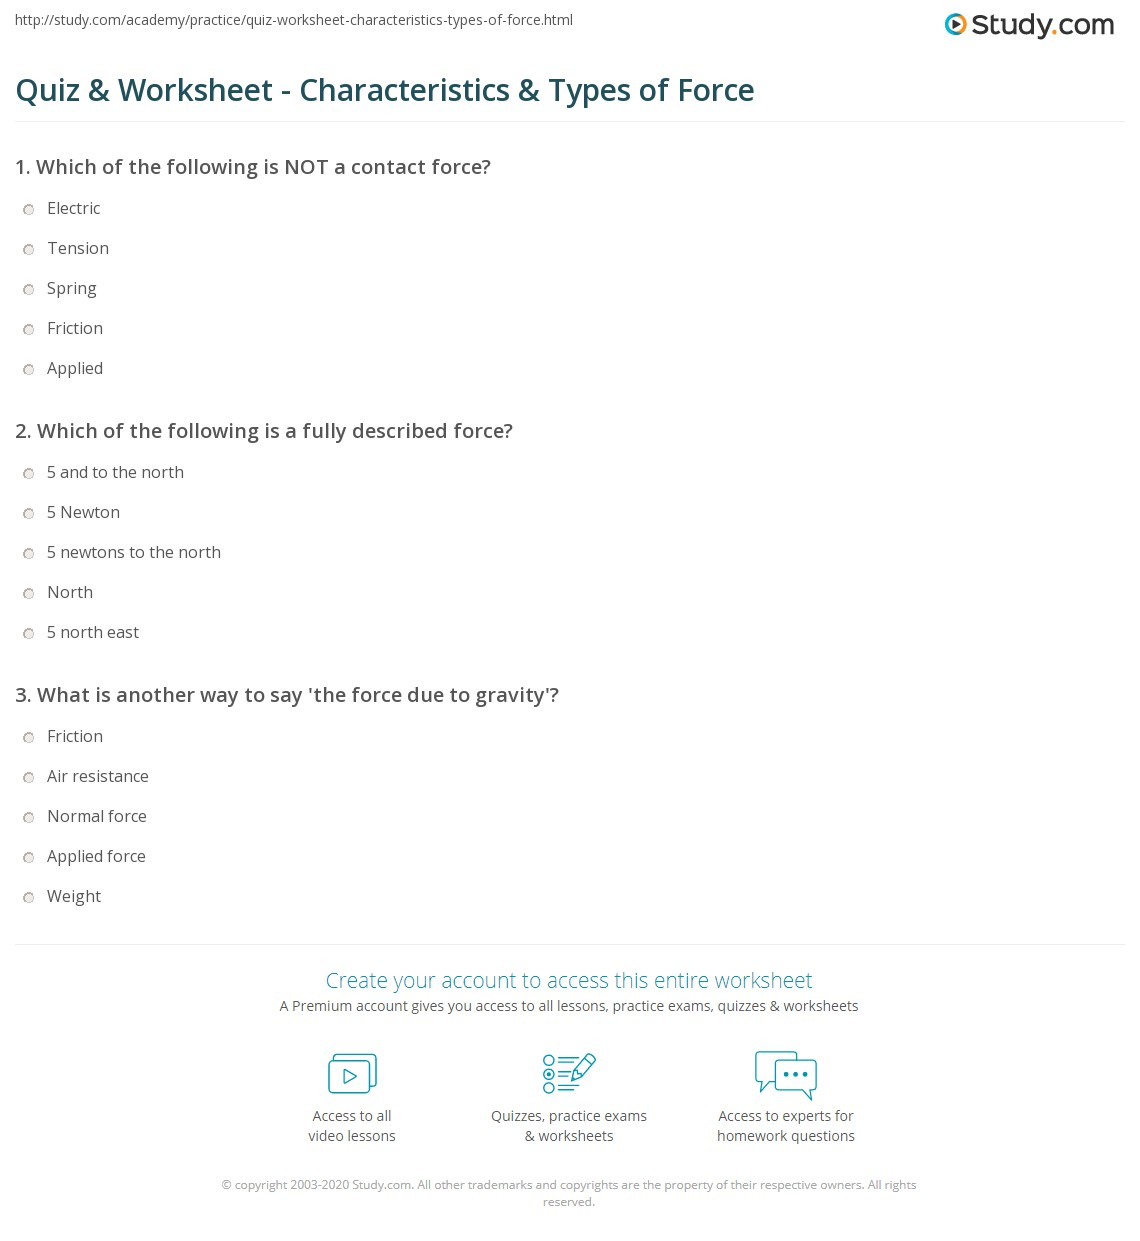 Worksheets Types Of Forces Worksheet quiz worksheet characteristics types of force study com print definition and worksheet